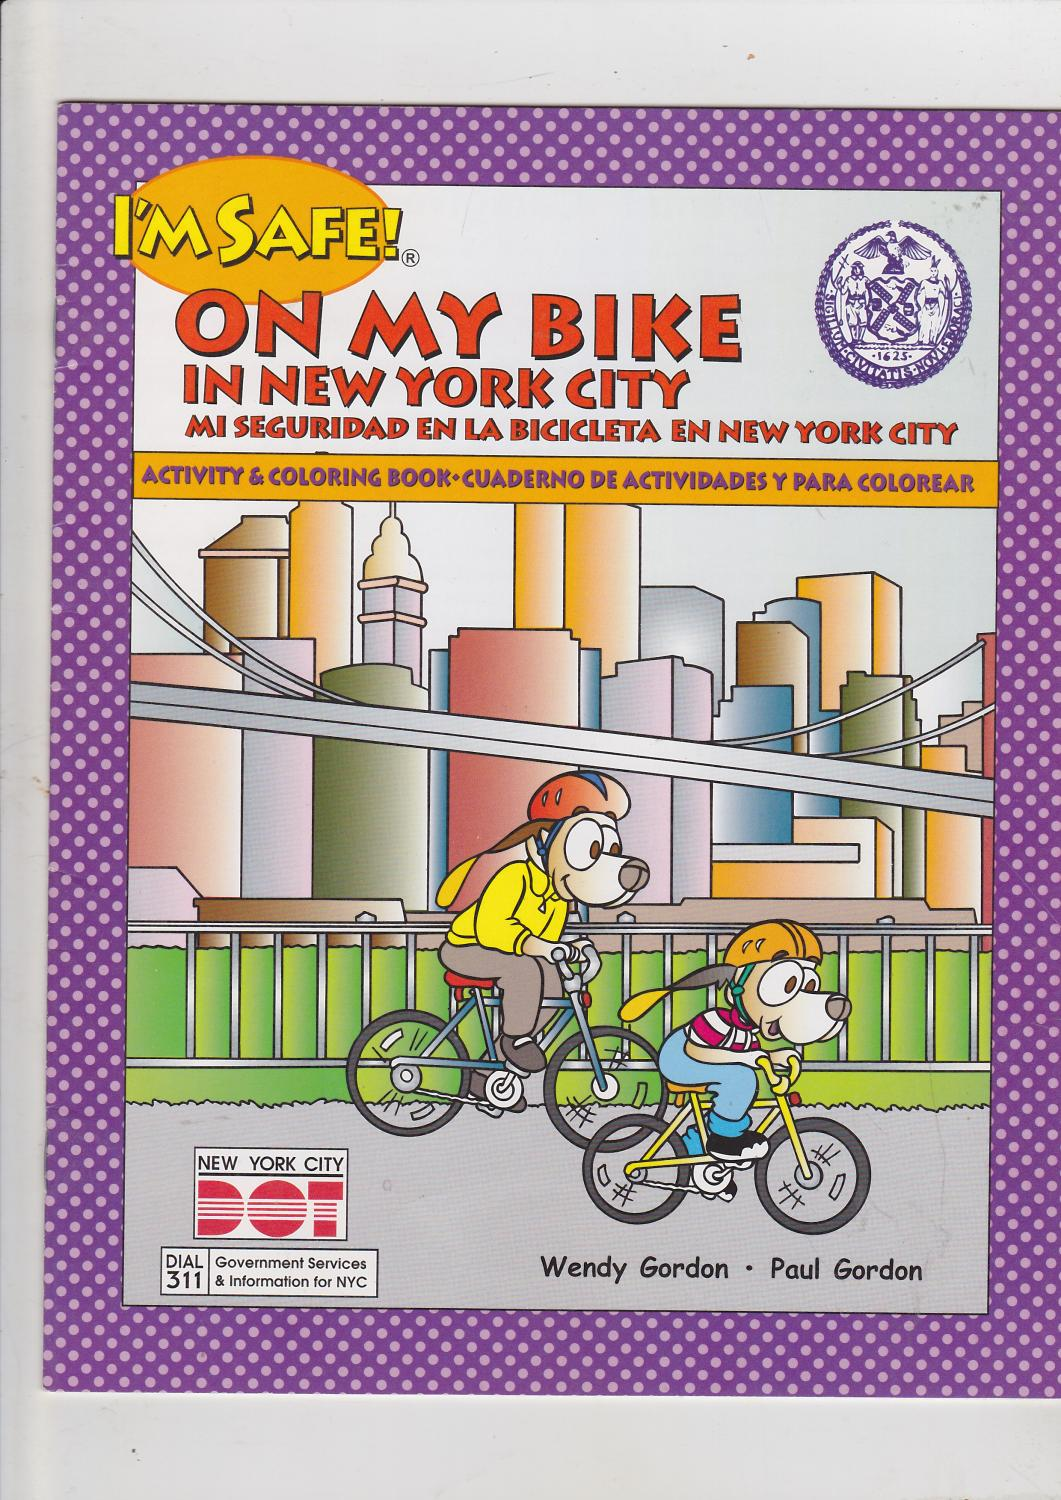 Im Safe On My Bike En La Bicicleta Activity Coloring Book Cuaderno